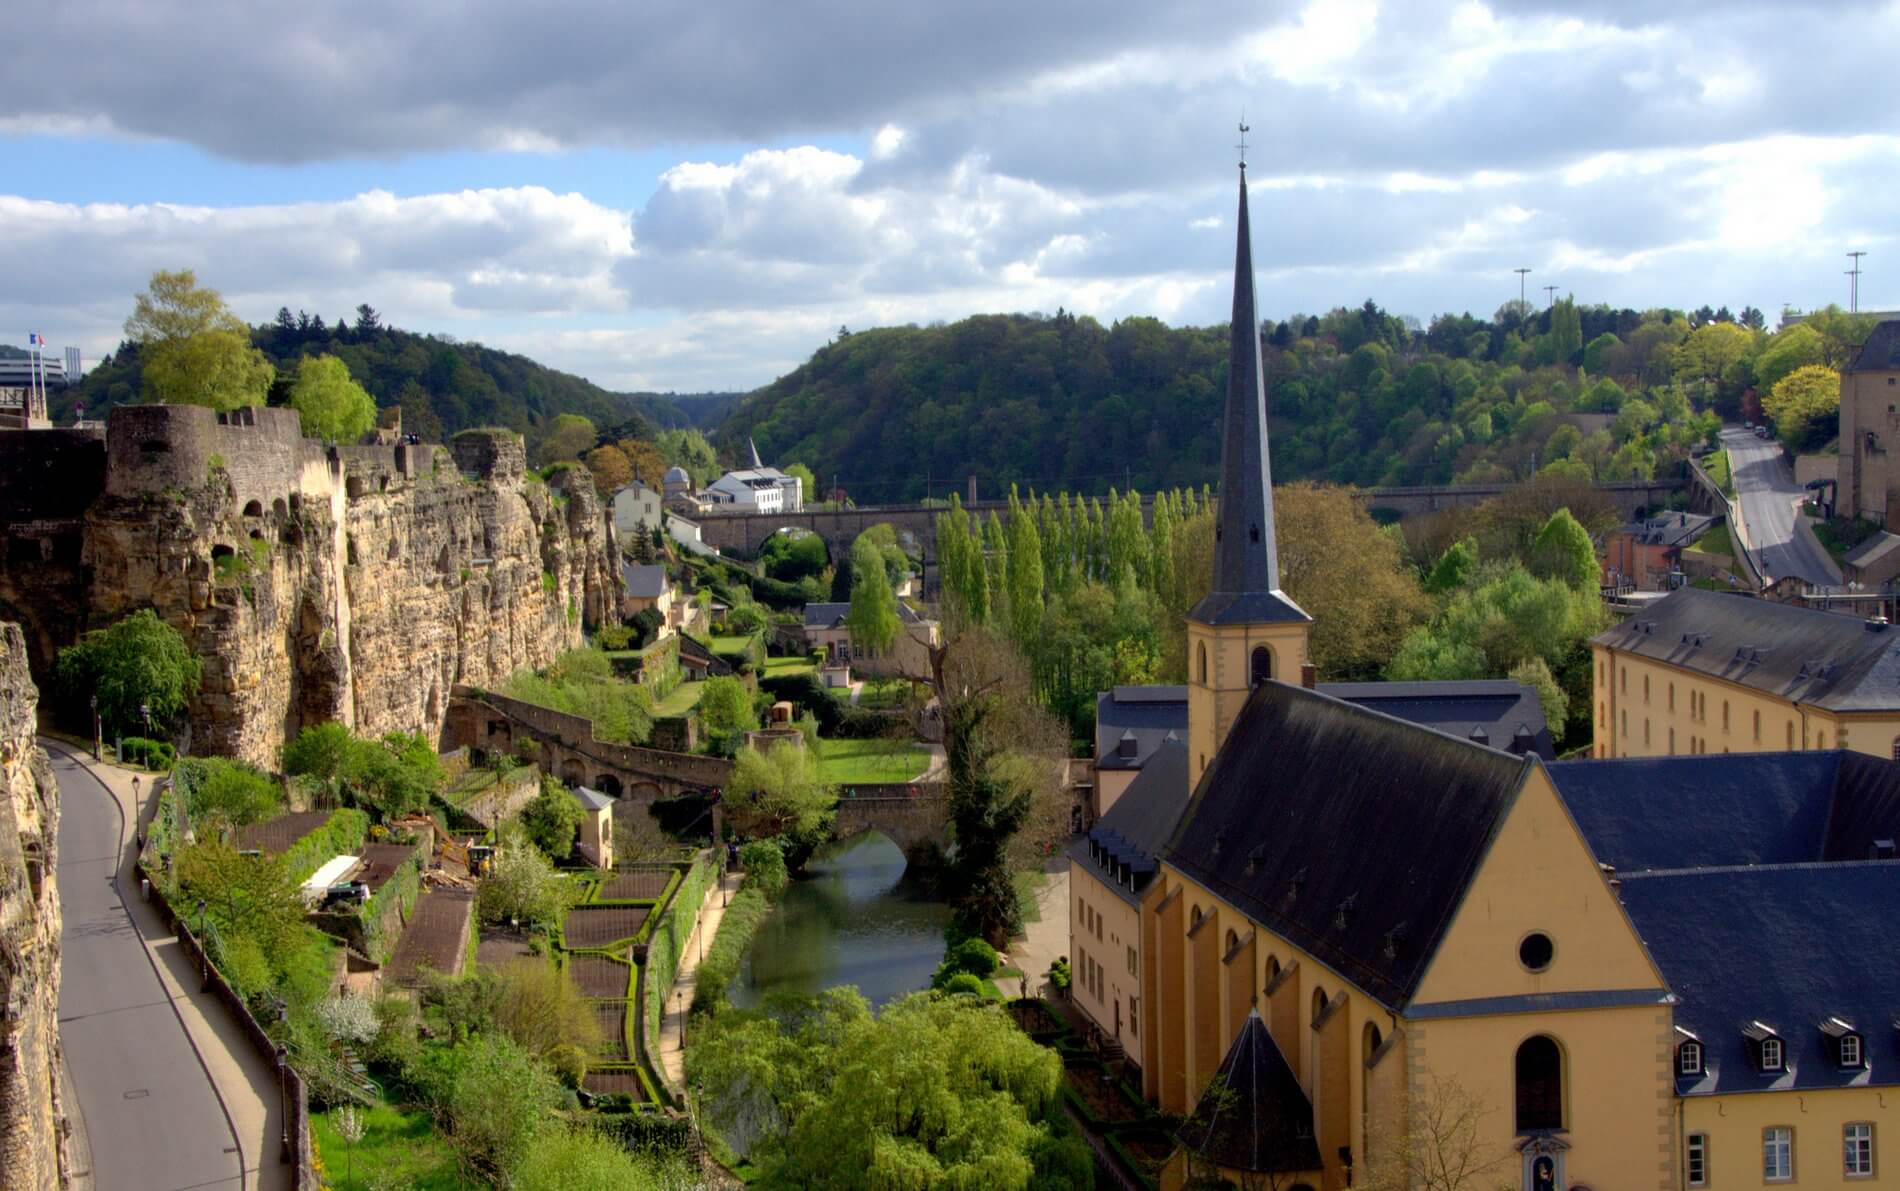 Losing My Wallet in Luxembourg